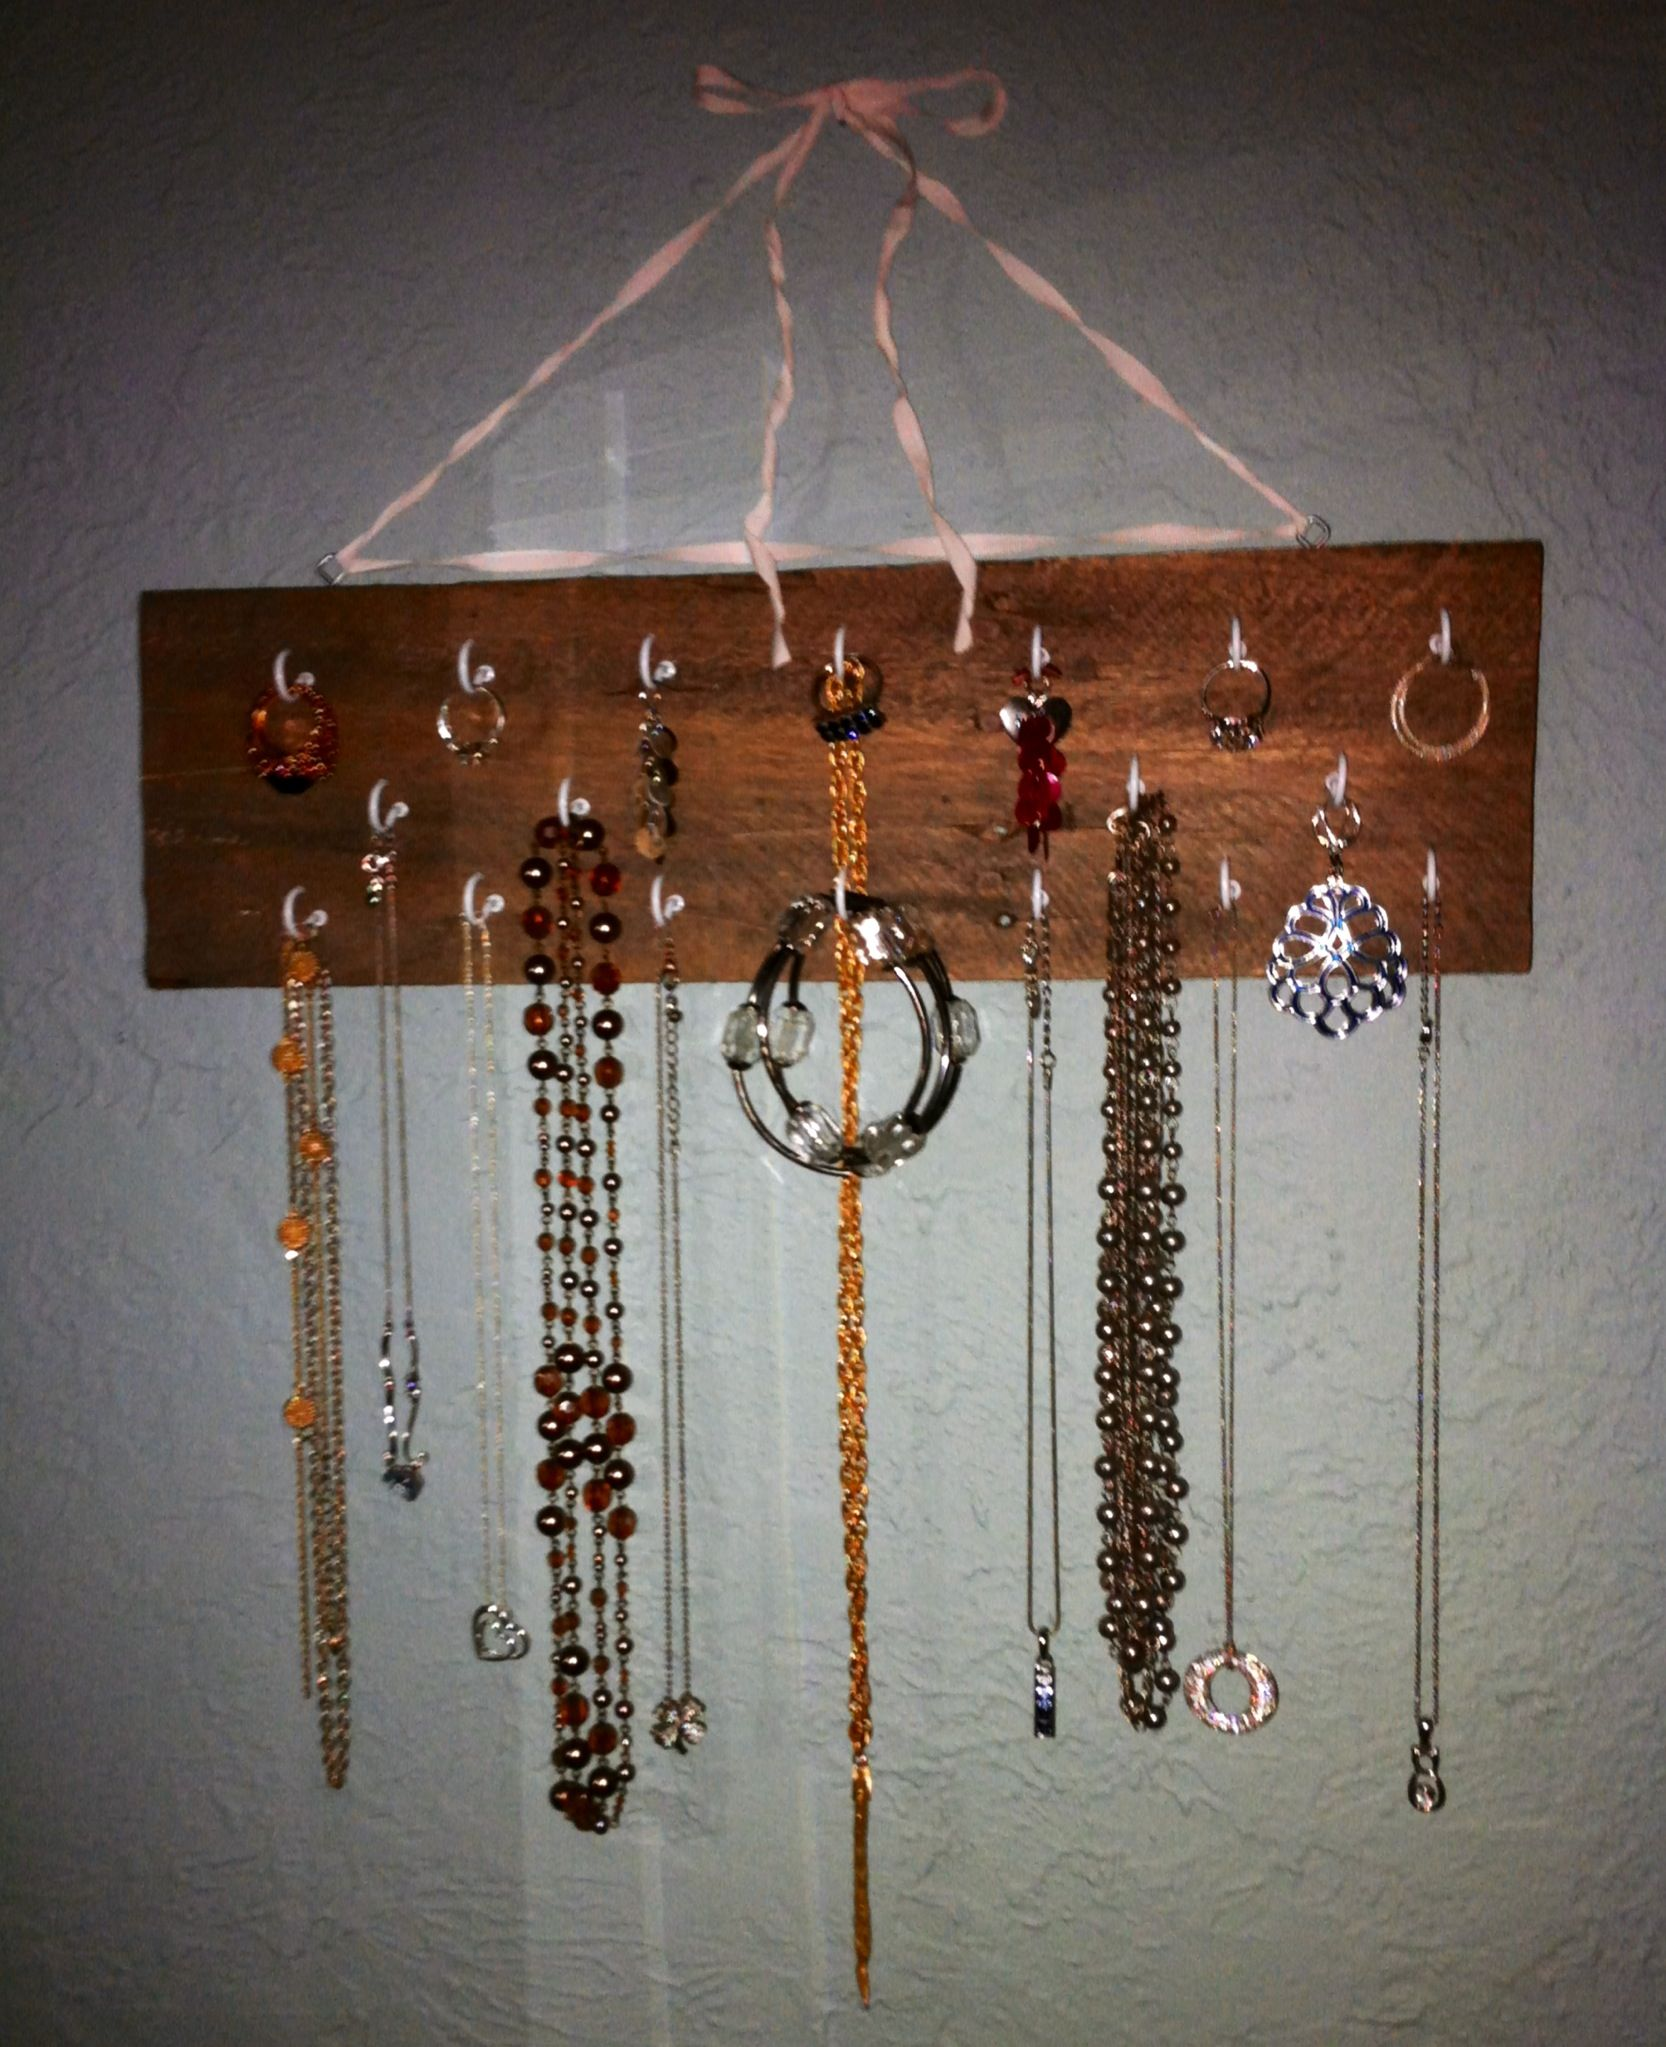 Quick DIY project reclaimed wood jewelry organizer display